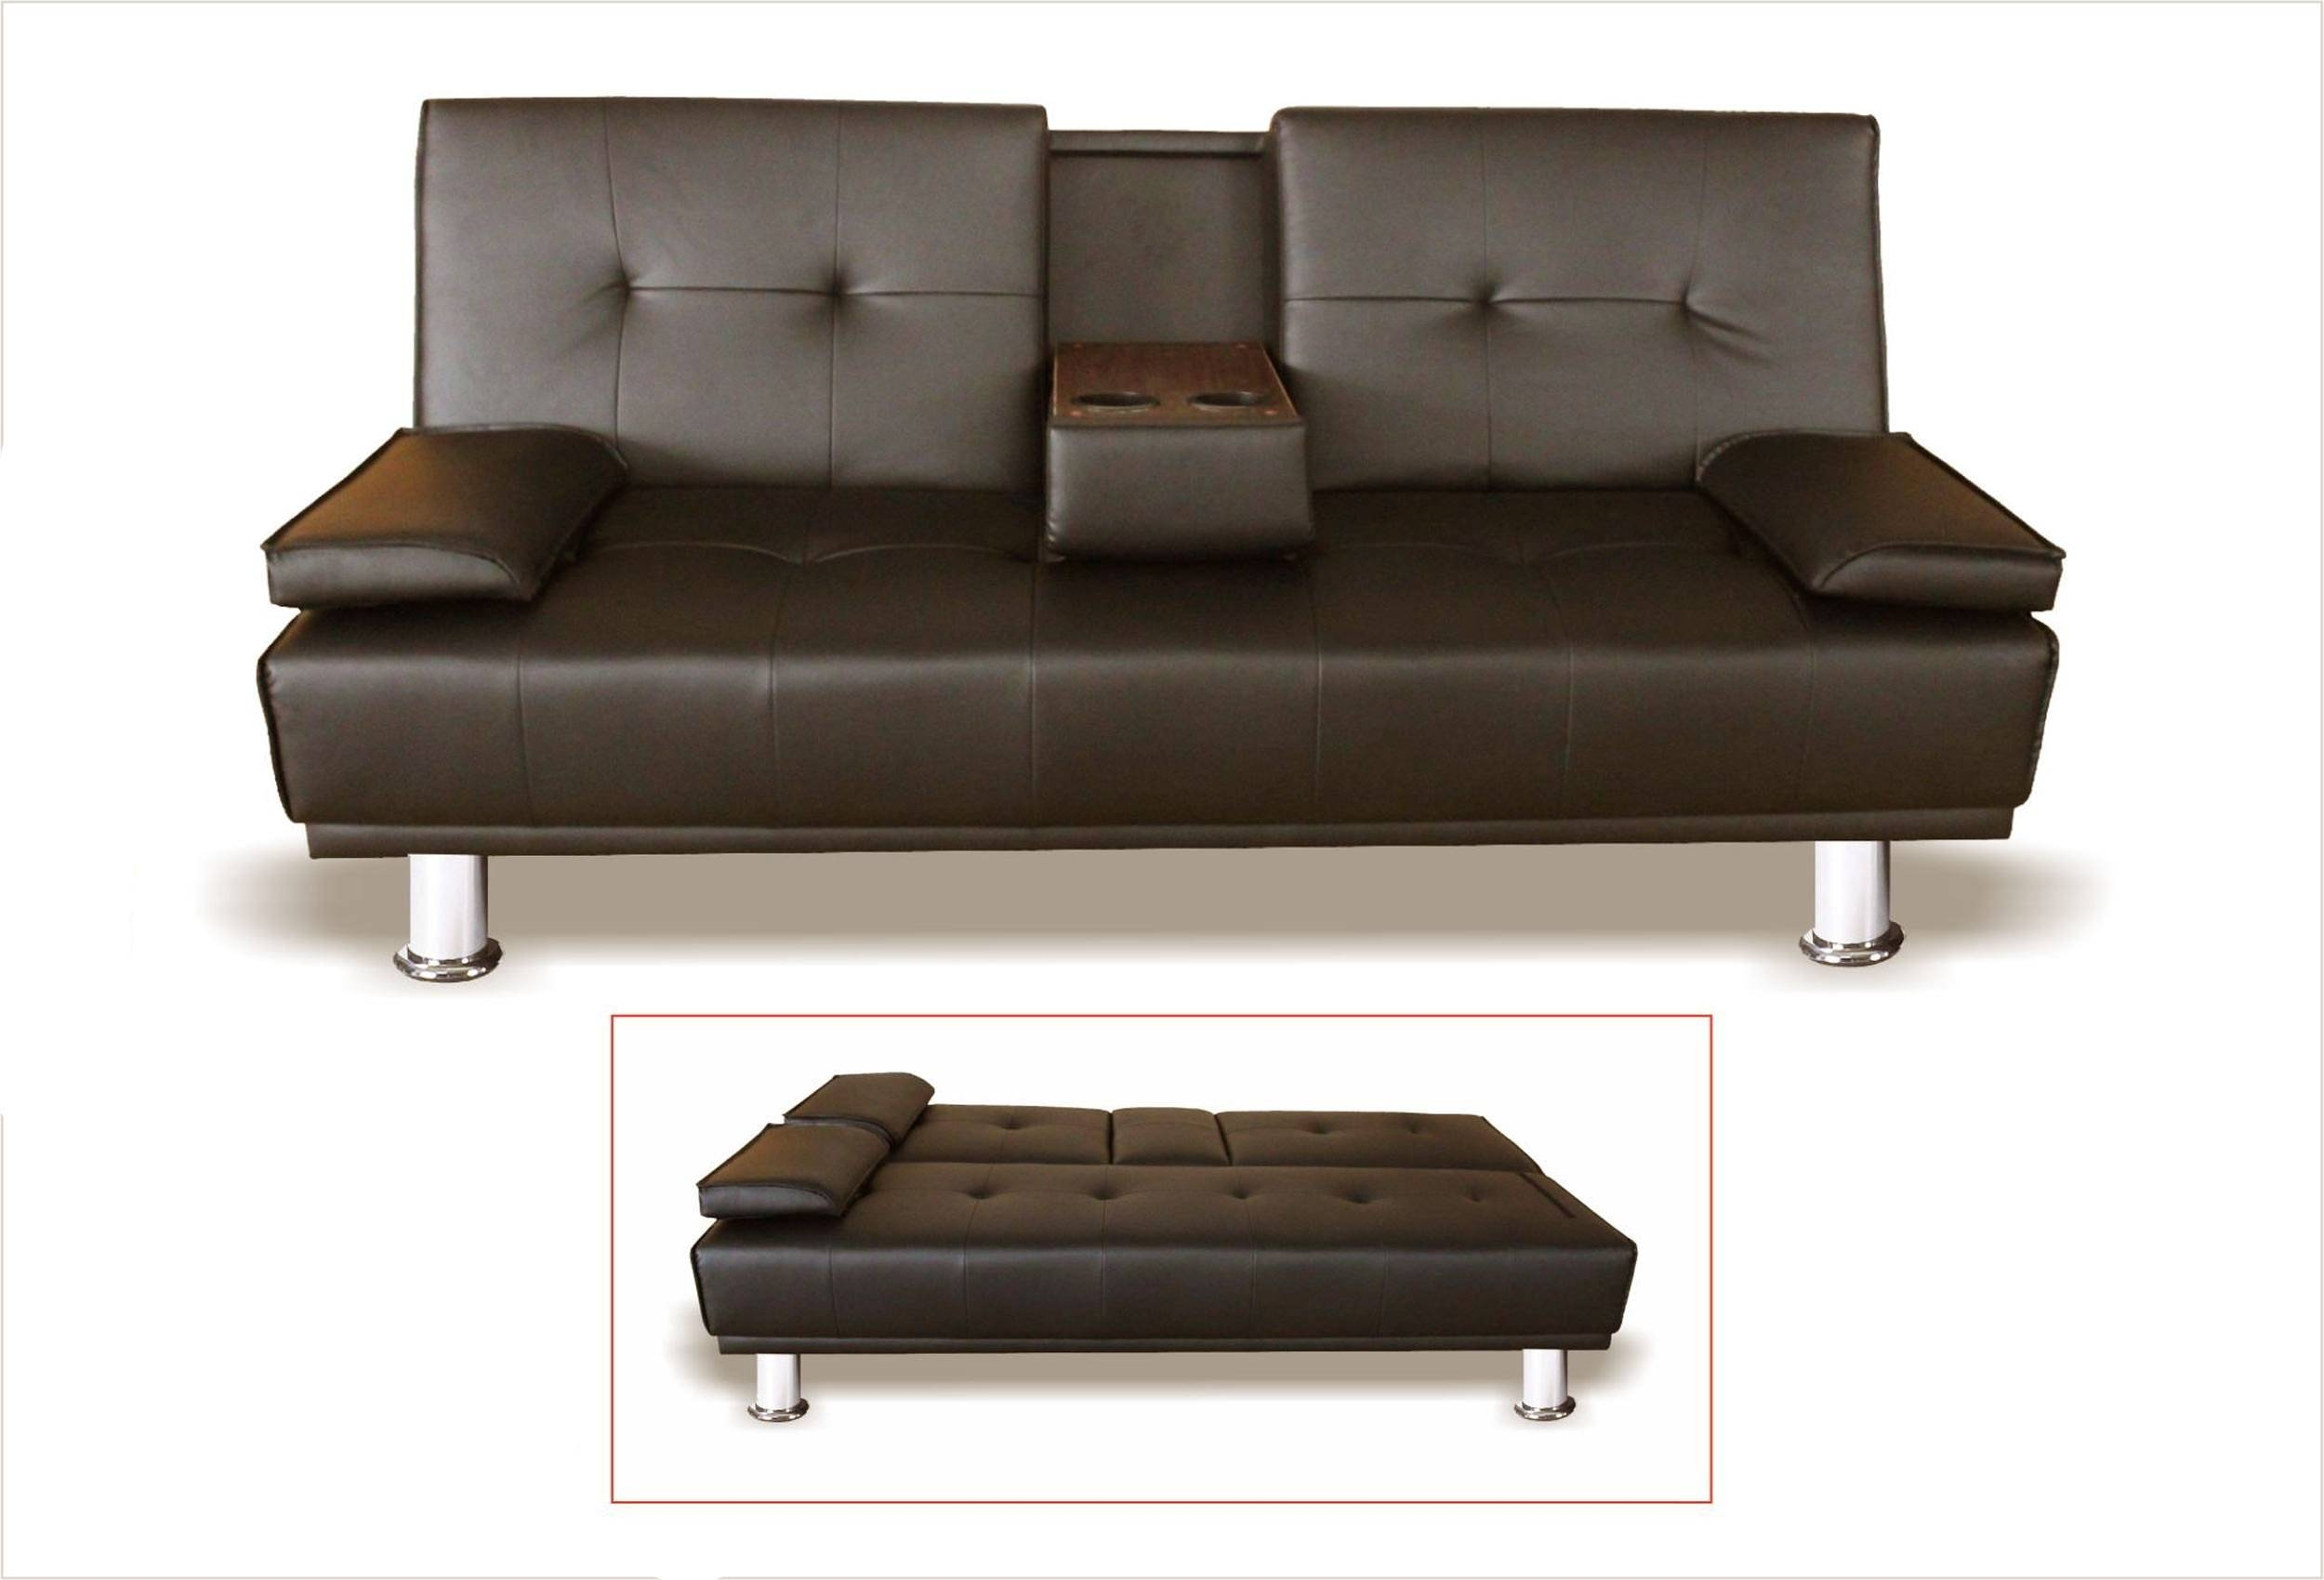 Clic Clac Sofa Bed Pictures Of Click Clack Sofa Bed - Home Decor Ideas pertaining to Clic Clac Sofa Beds (Image 2 of 15)